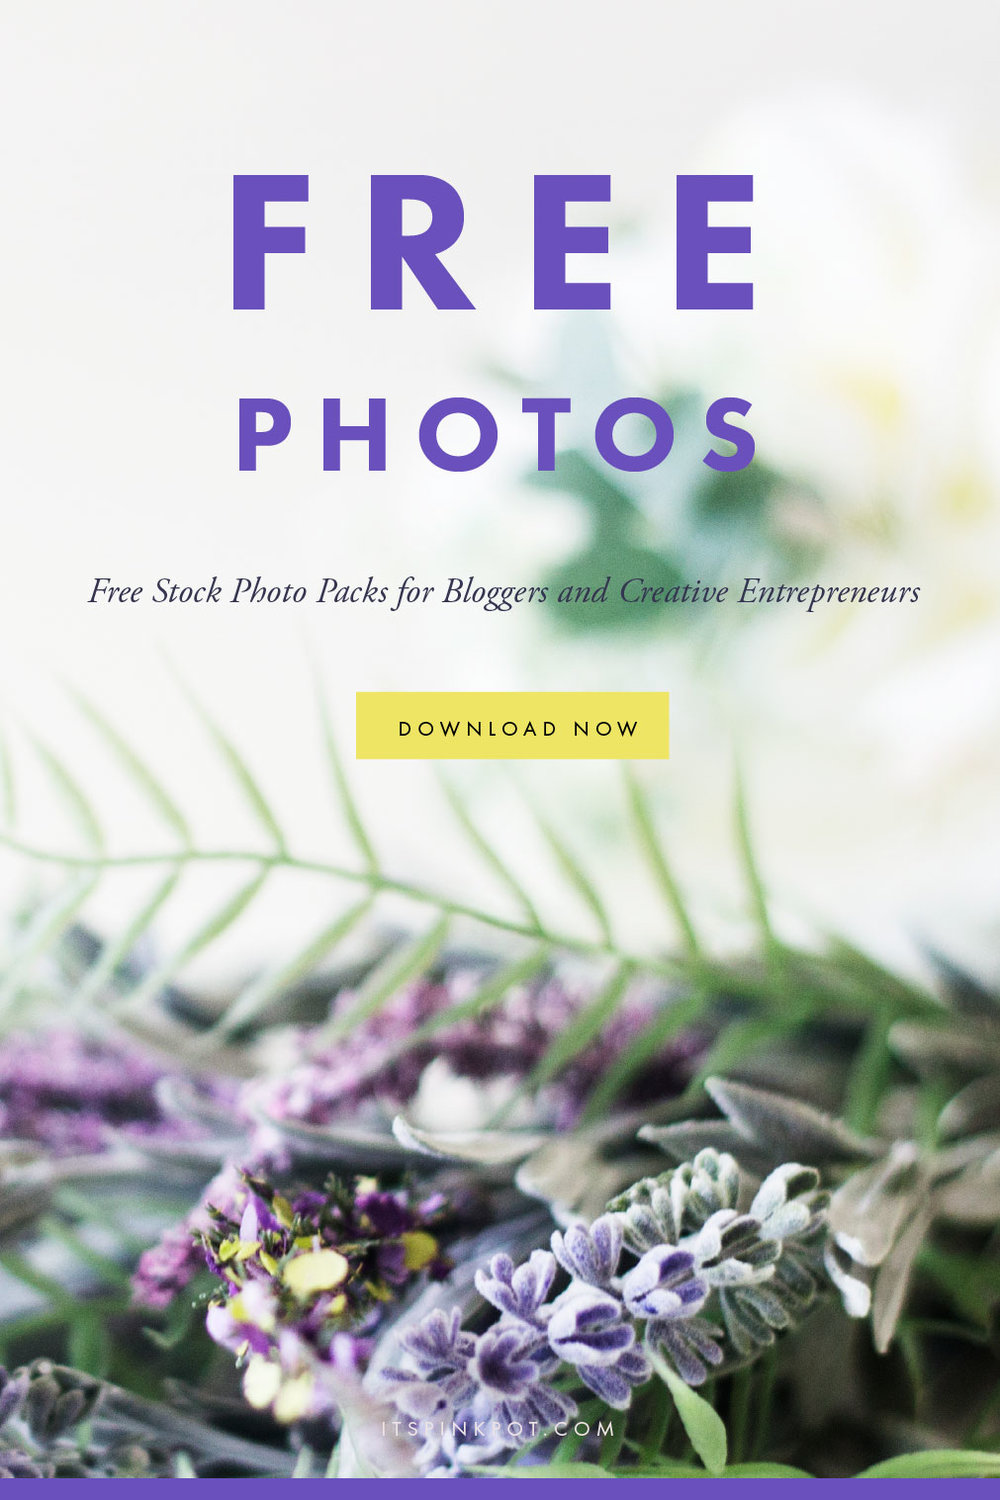 FREE desktop styled photo pack for creatives and bloggers! Download now for use on your blog or website!